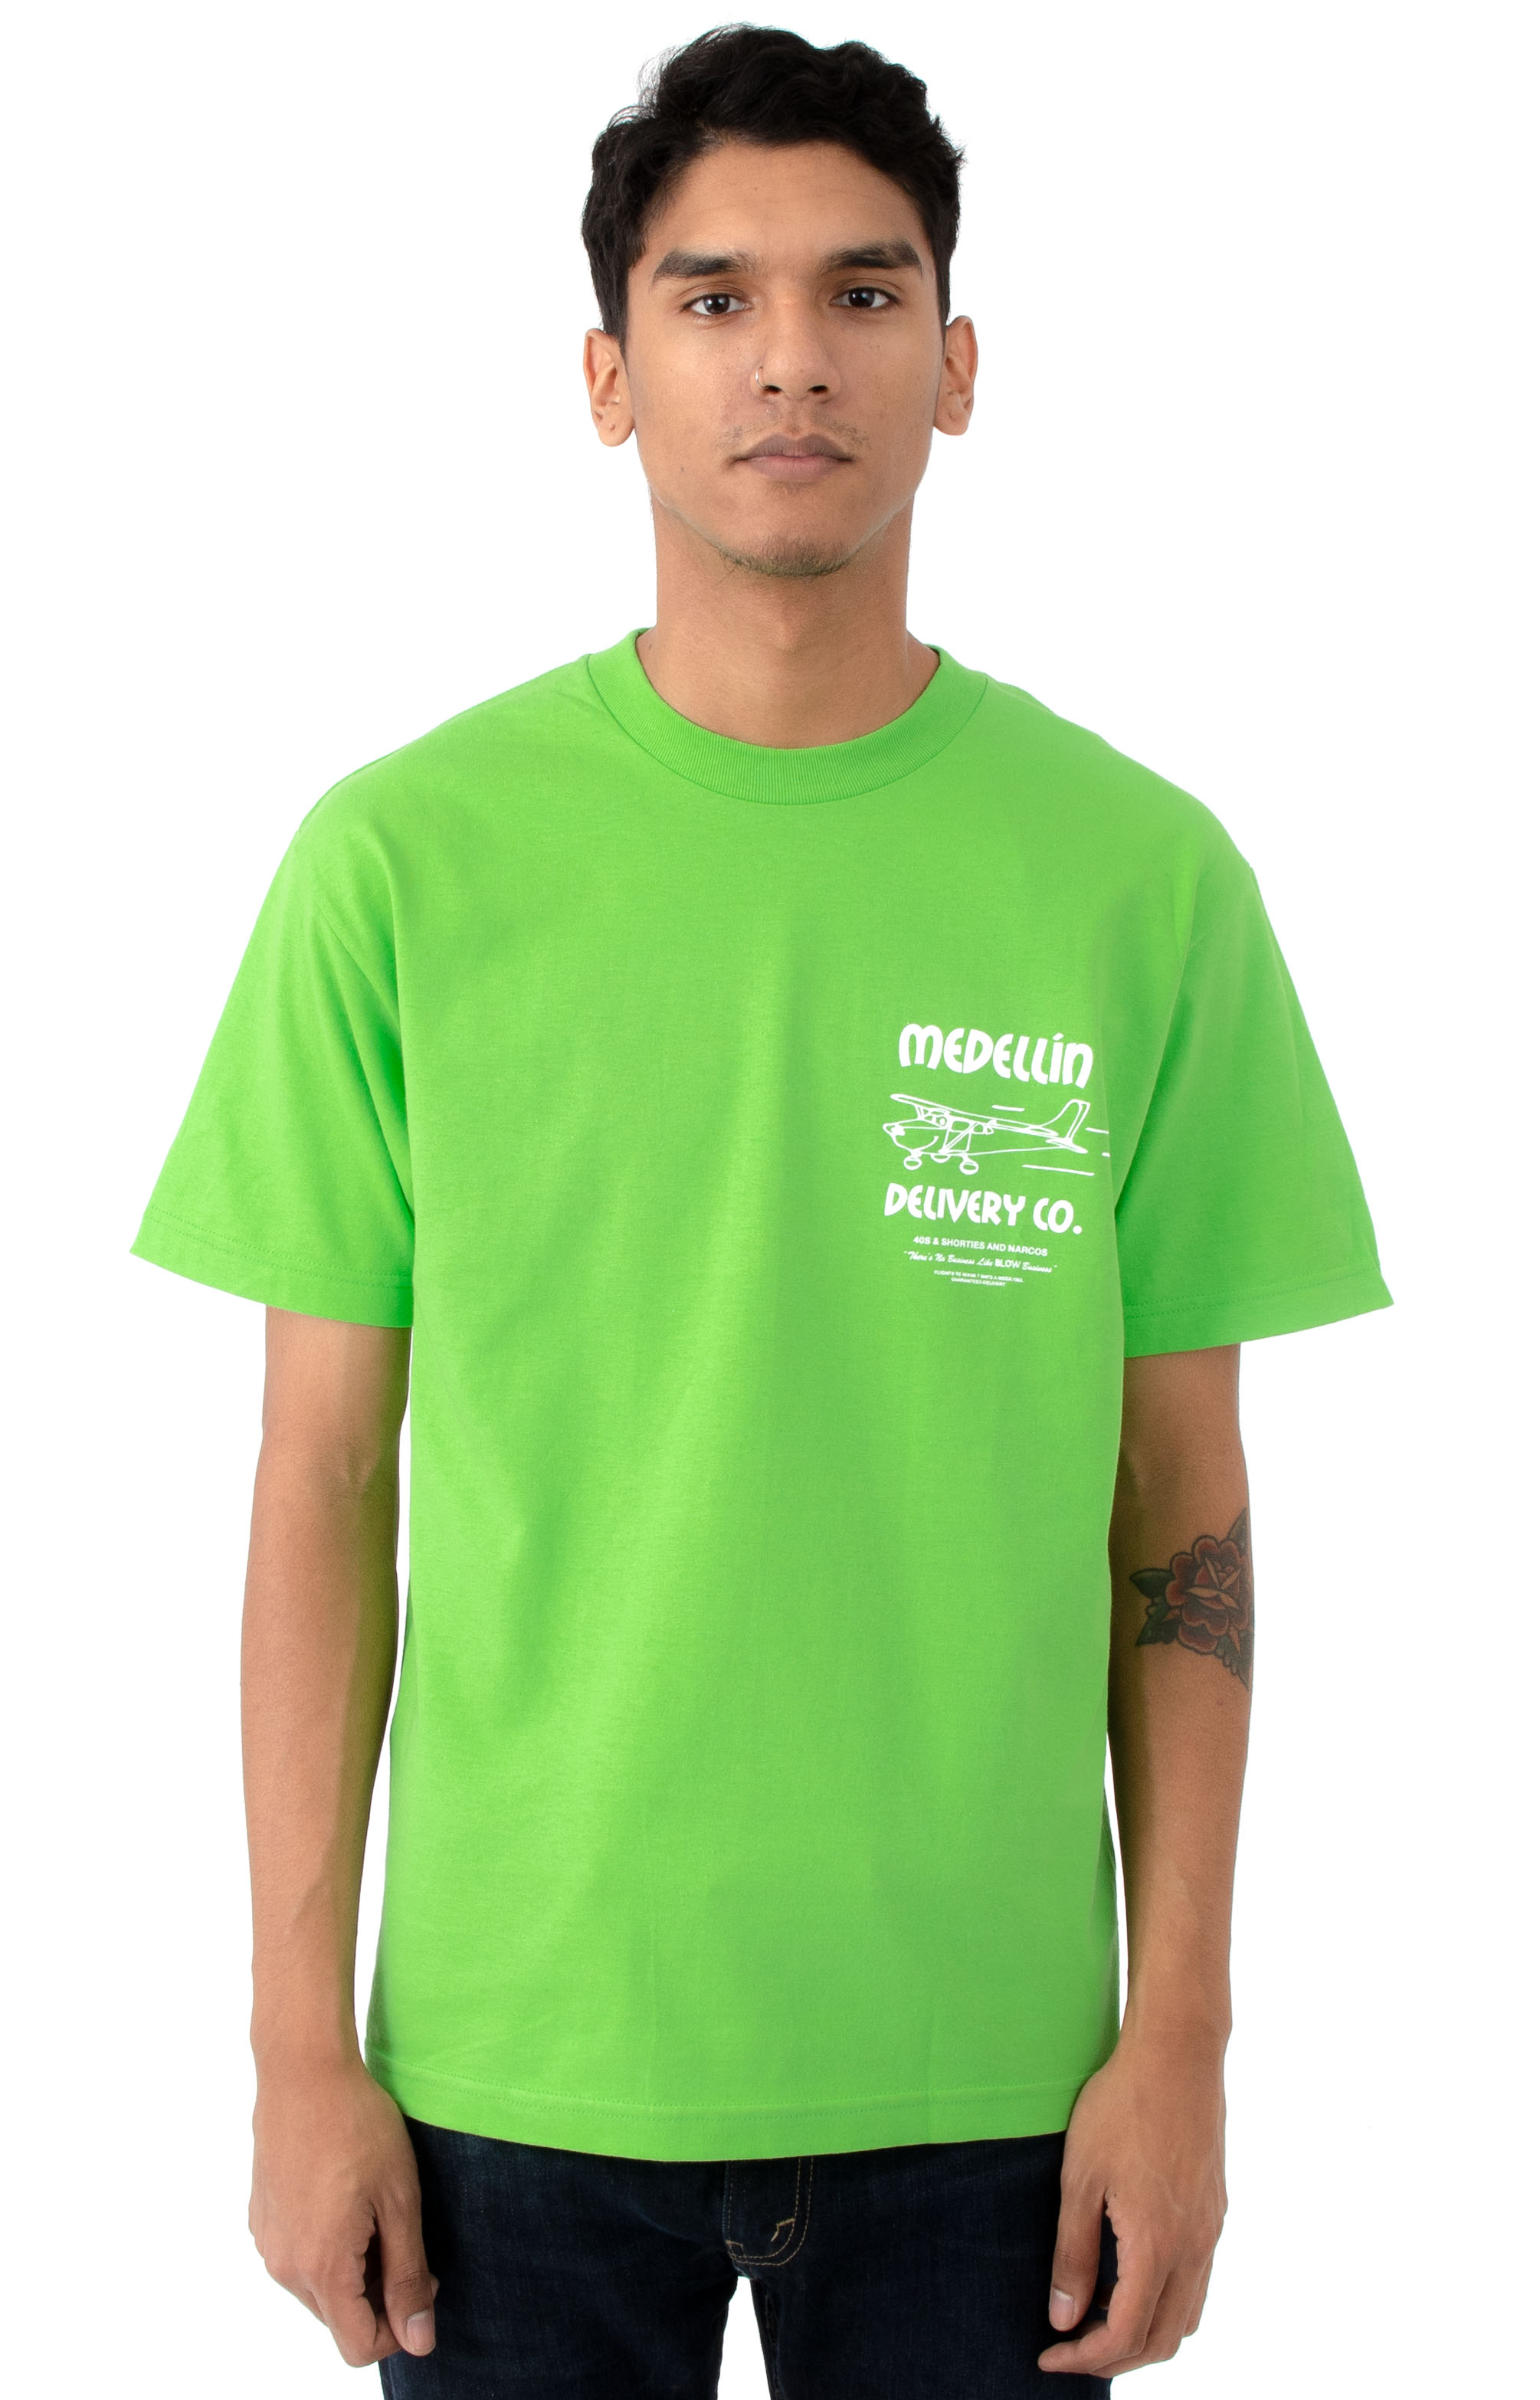 Delivery T-Shirt - Lime 2